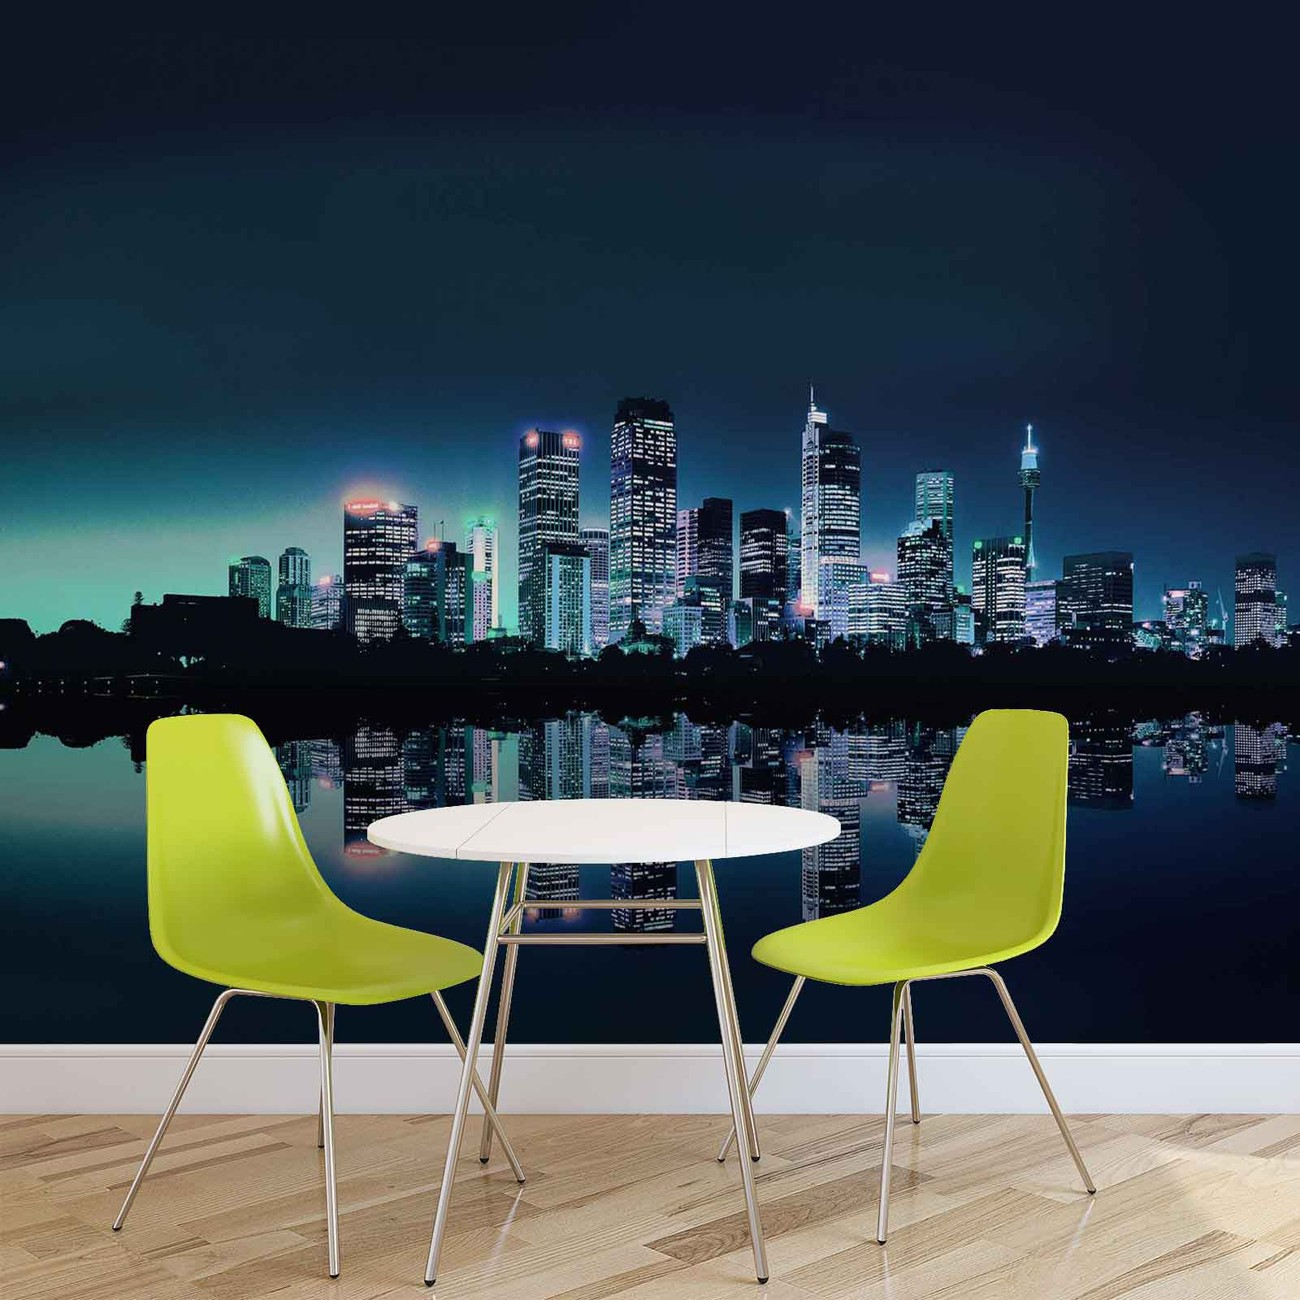 City skyline wall paper mural buy at europosters for Cityscape murals photo wall mural